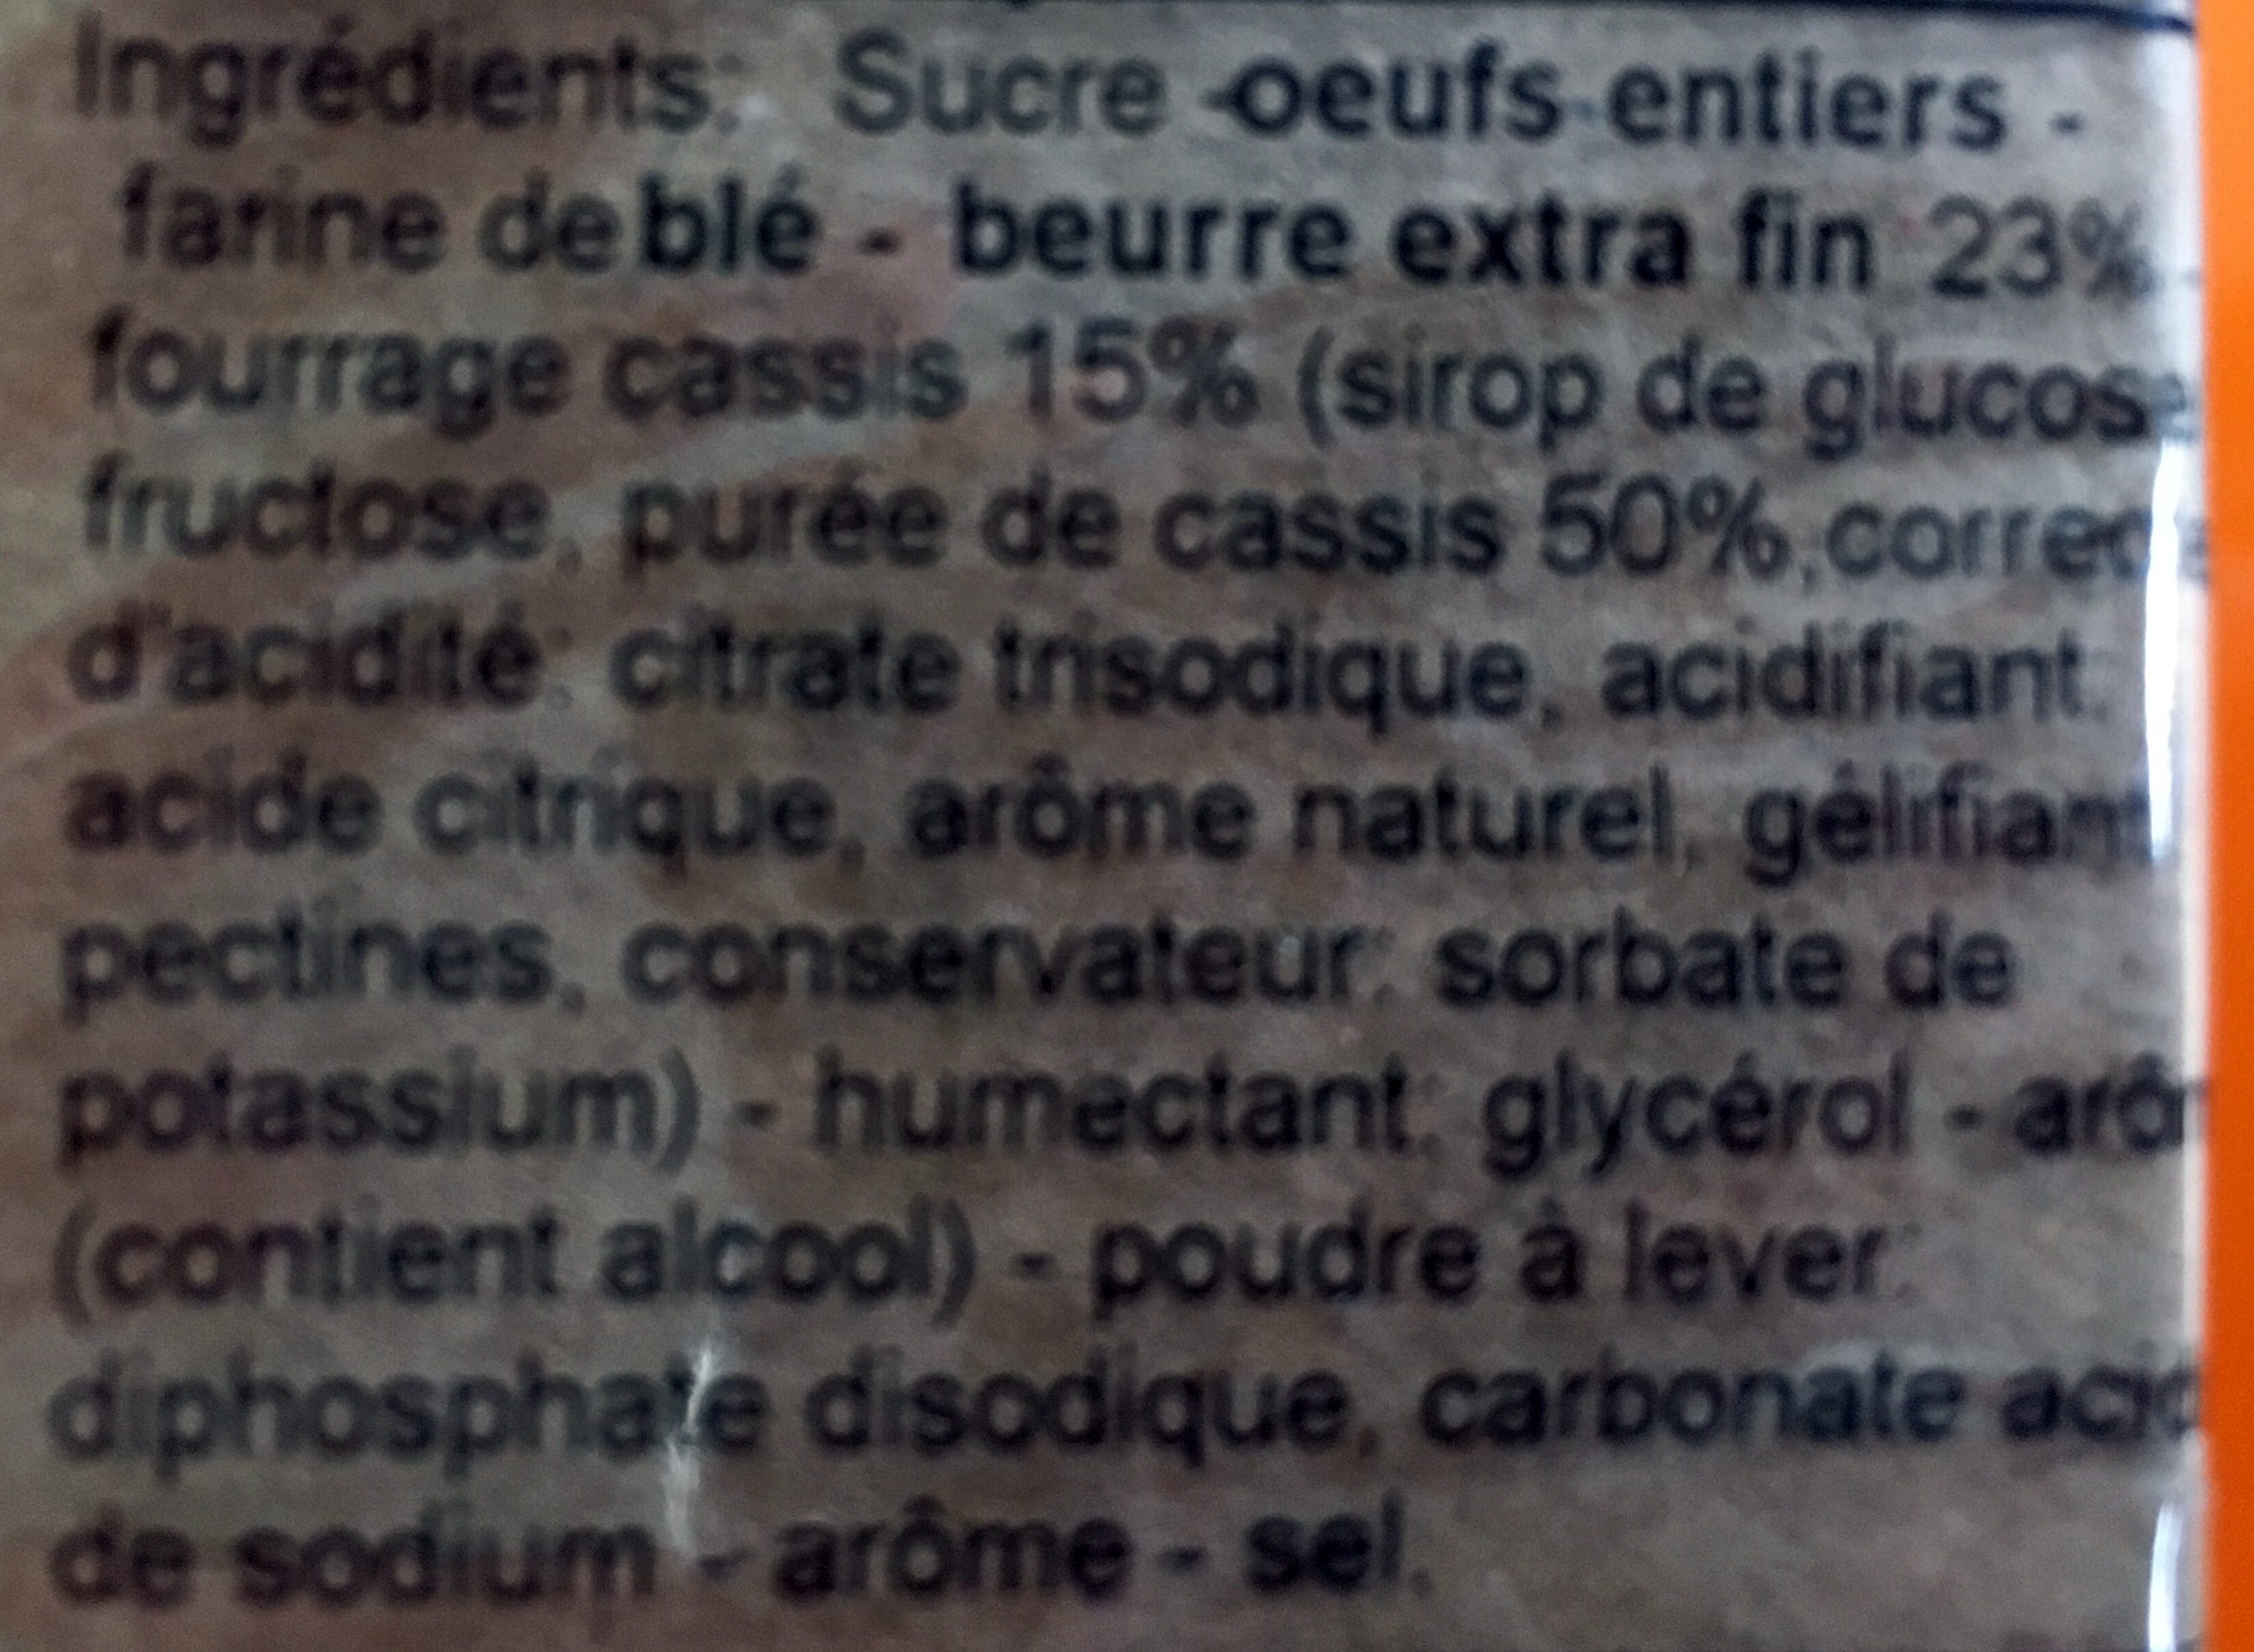 Quatre-quarts cassis - Ingredients - fr